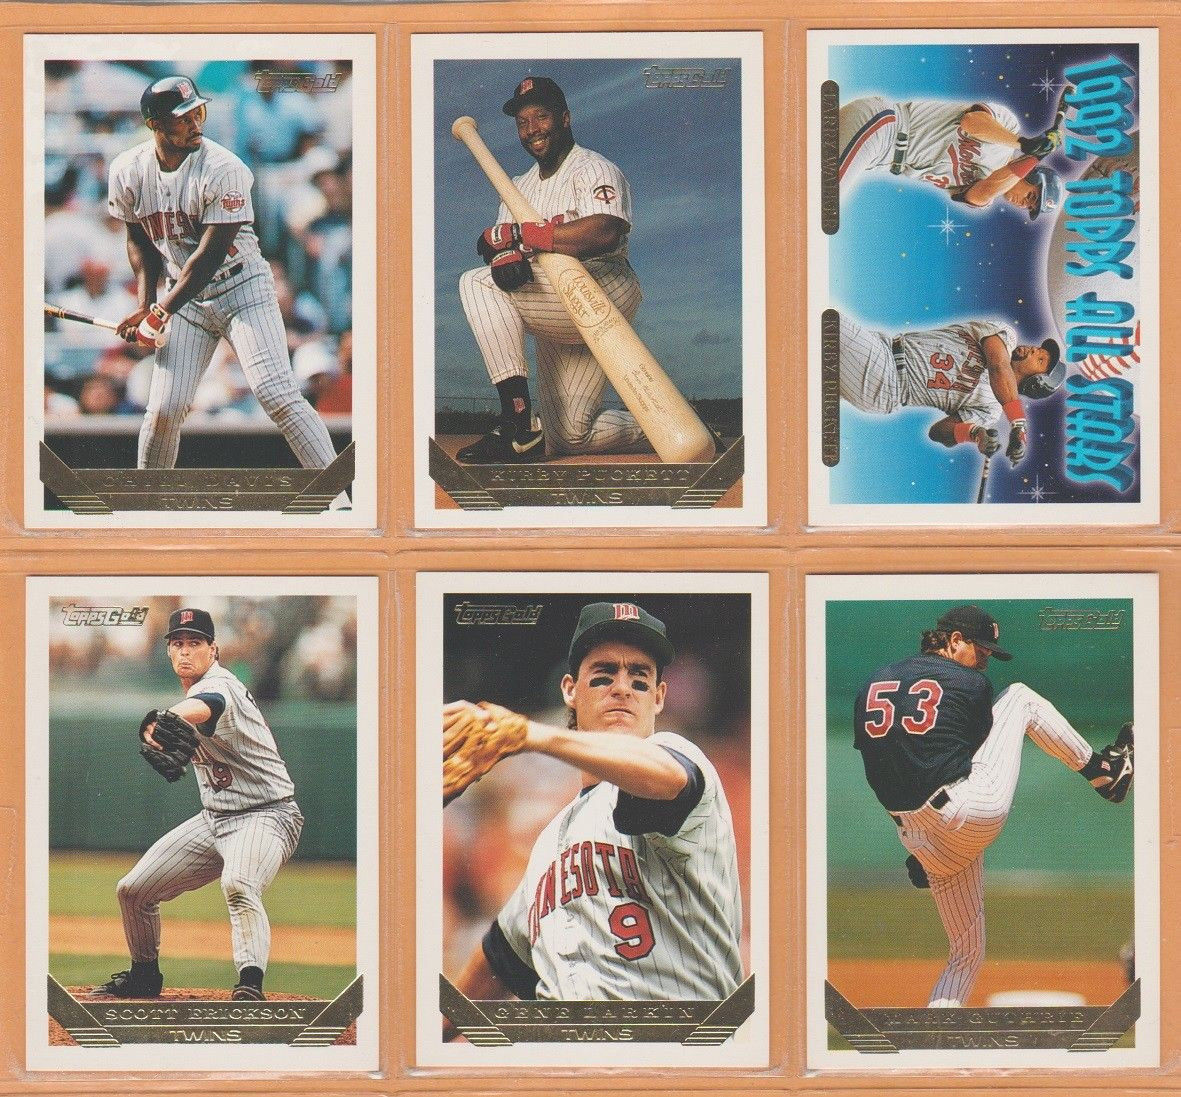 1993 Topps Gold Insert Minnesota Twins Team Lot Kirby Puckett Chili Davis +